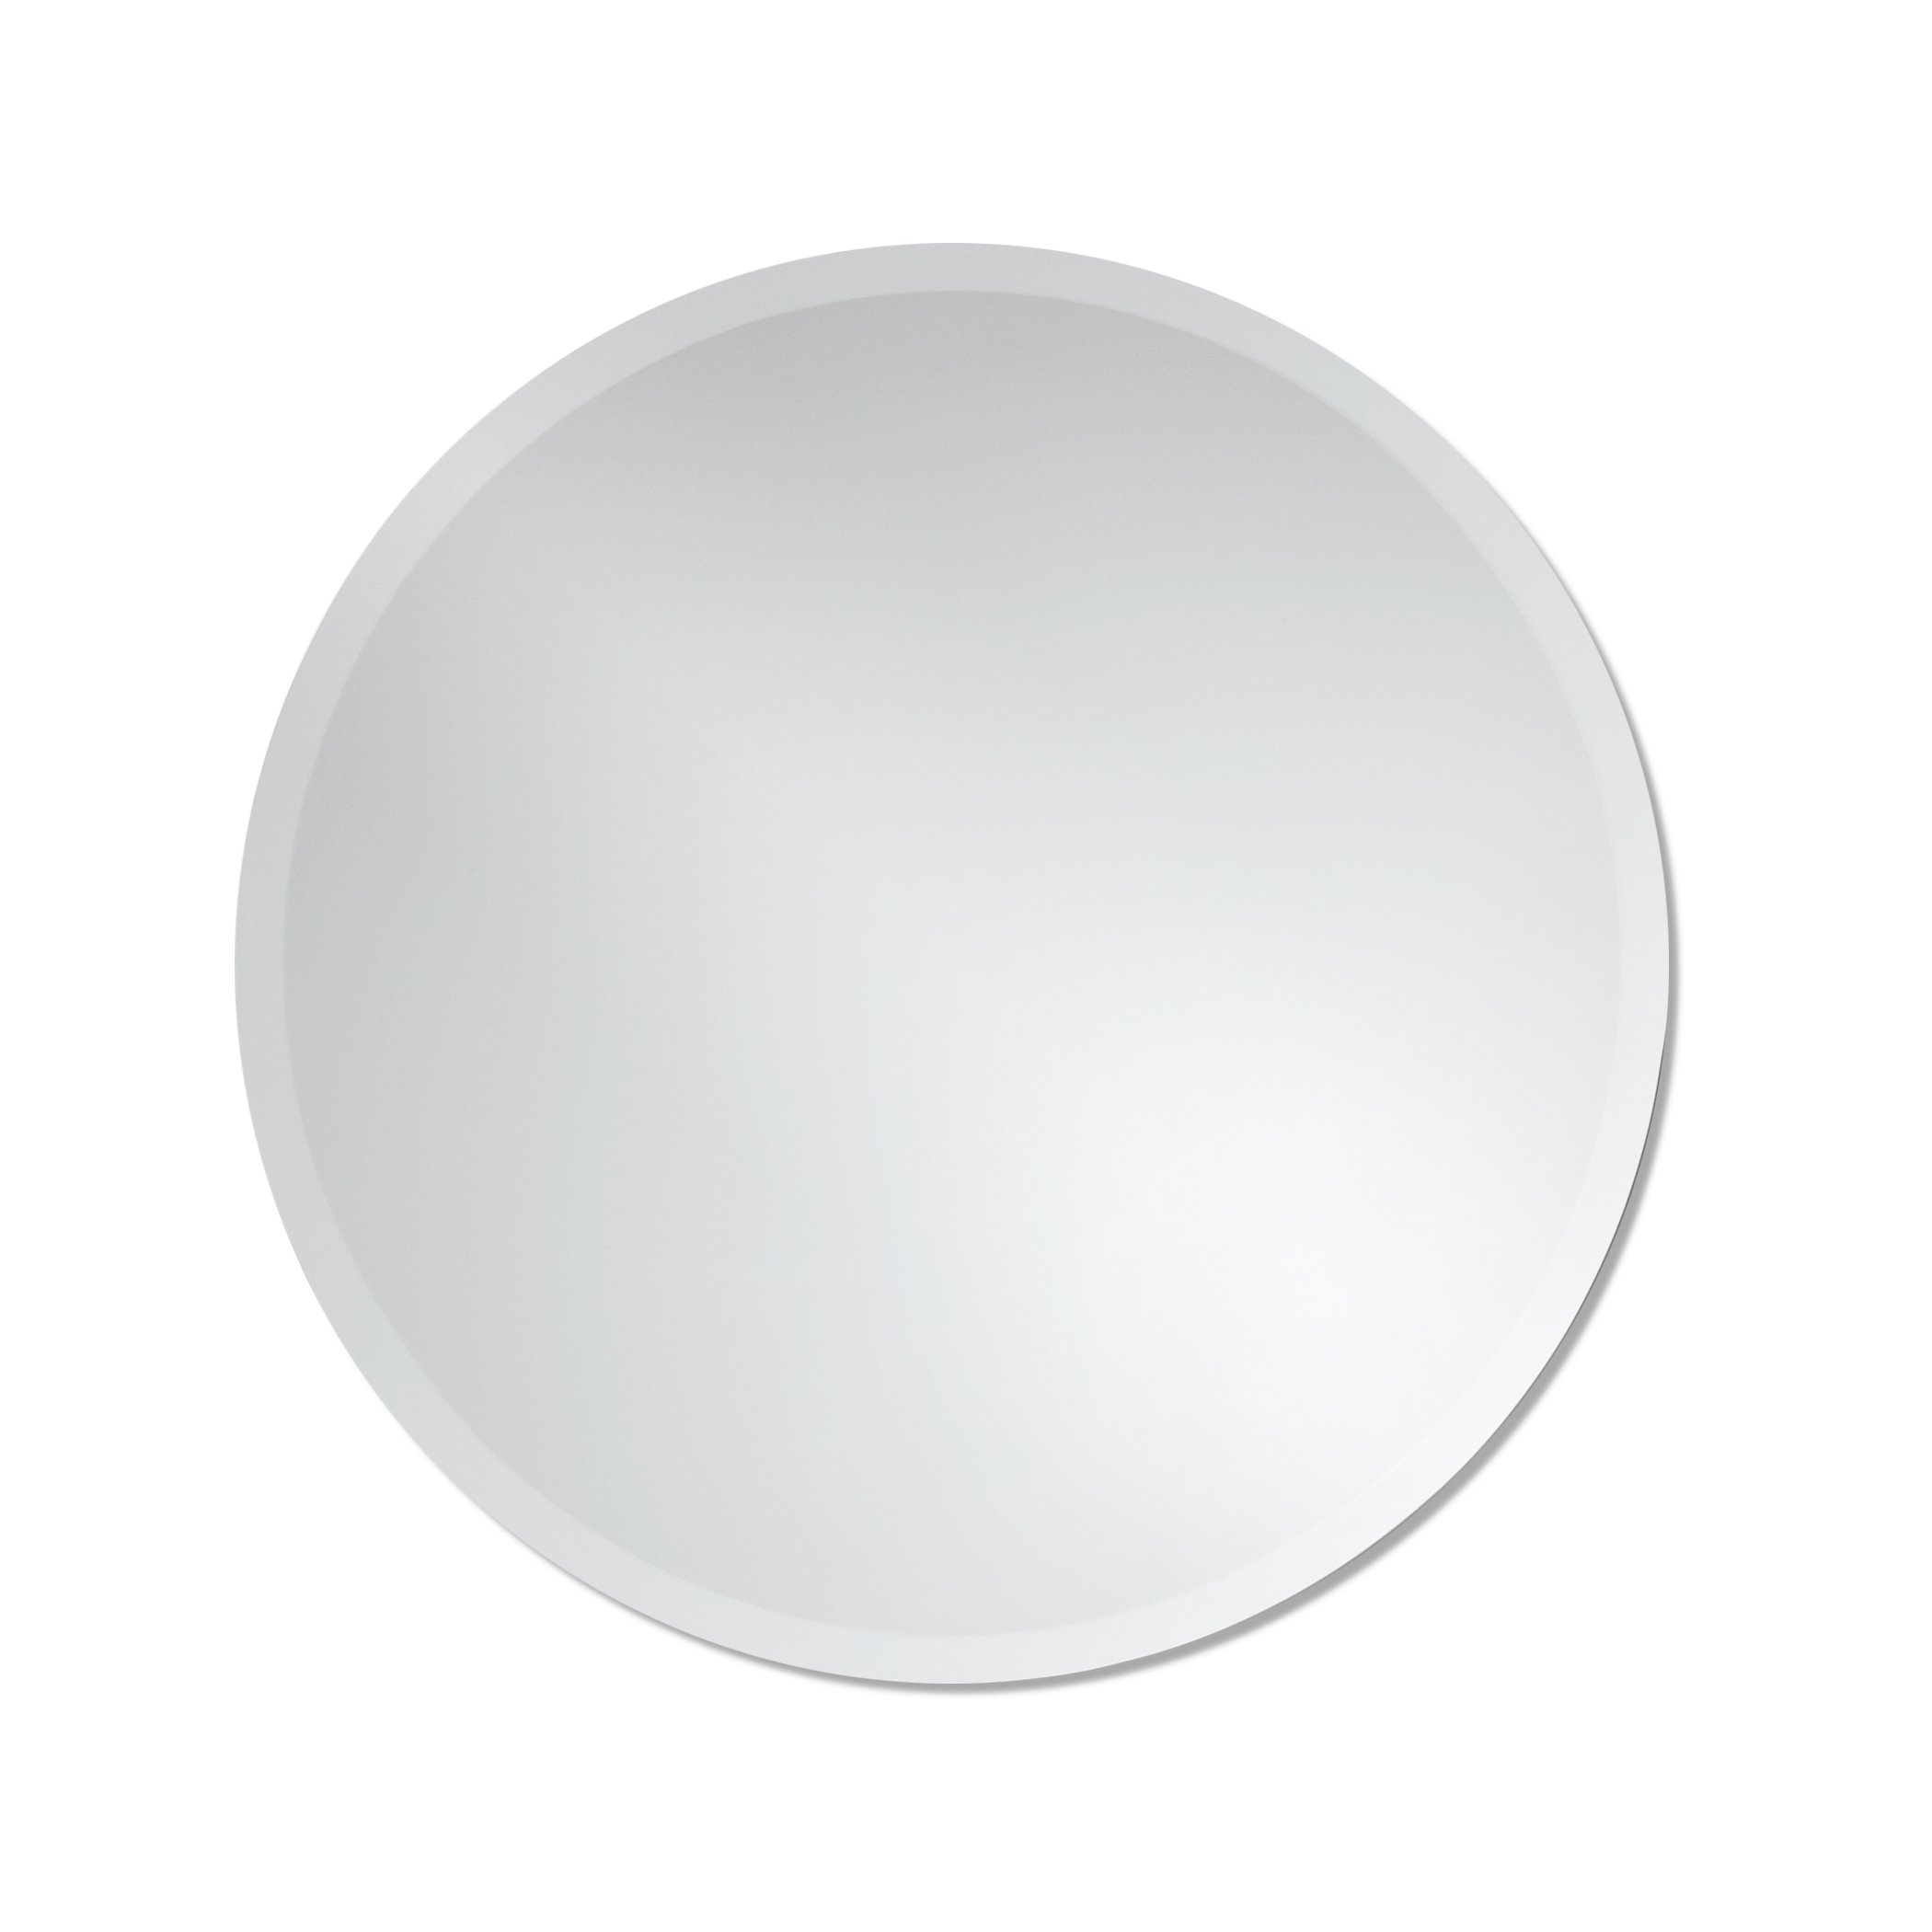 Round Frameless Wall Mirror | Bathroom, Vanity, Bedroom Mirror | 24-inch Diameter Circle | Beveled Edge